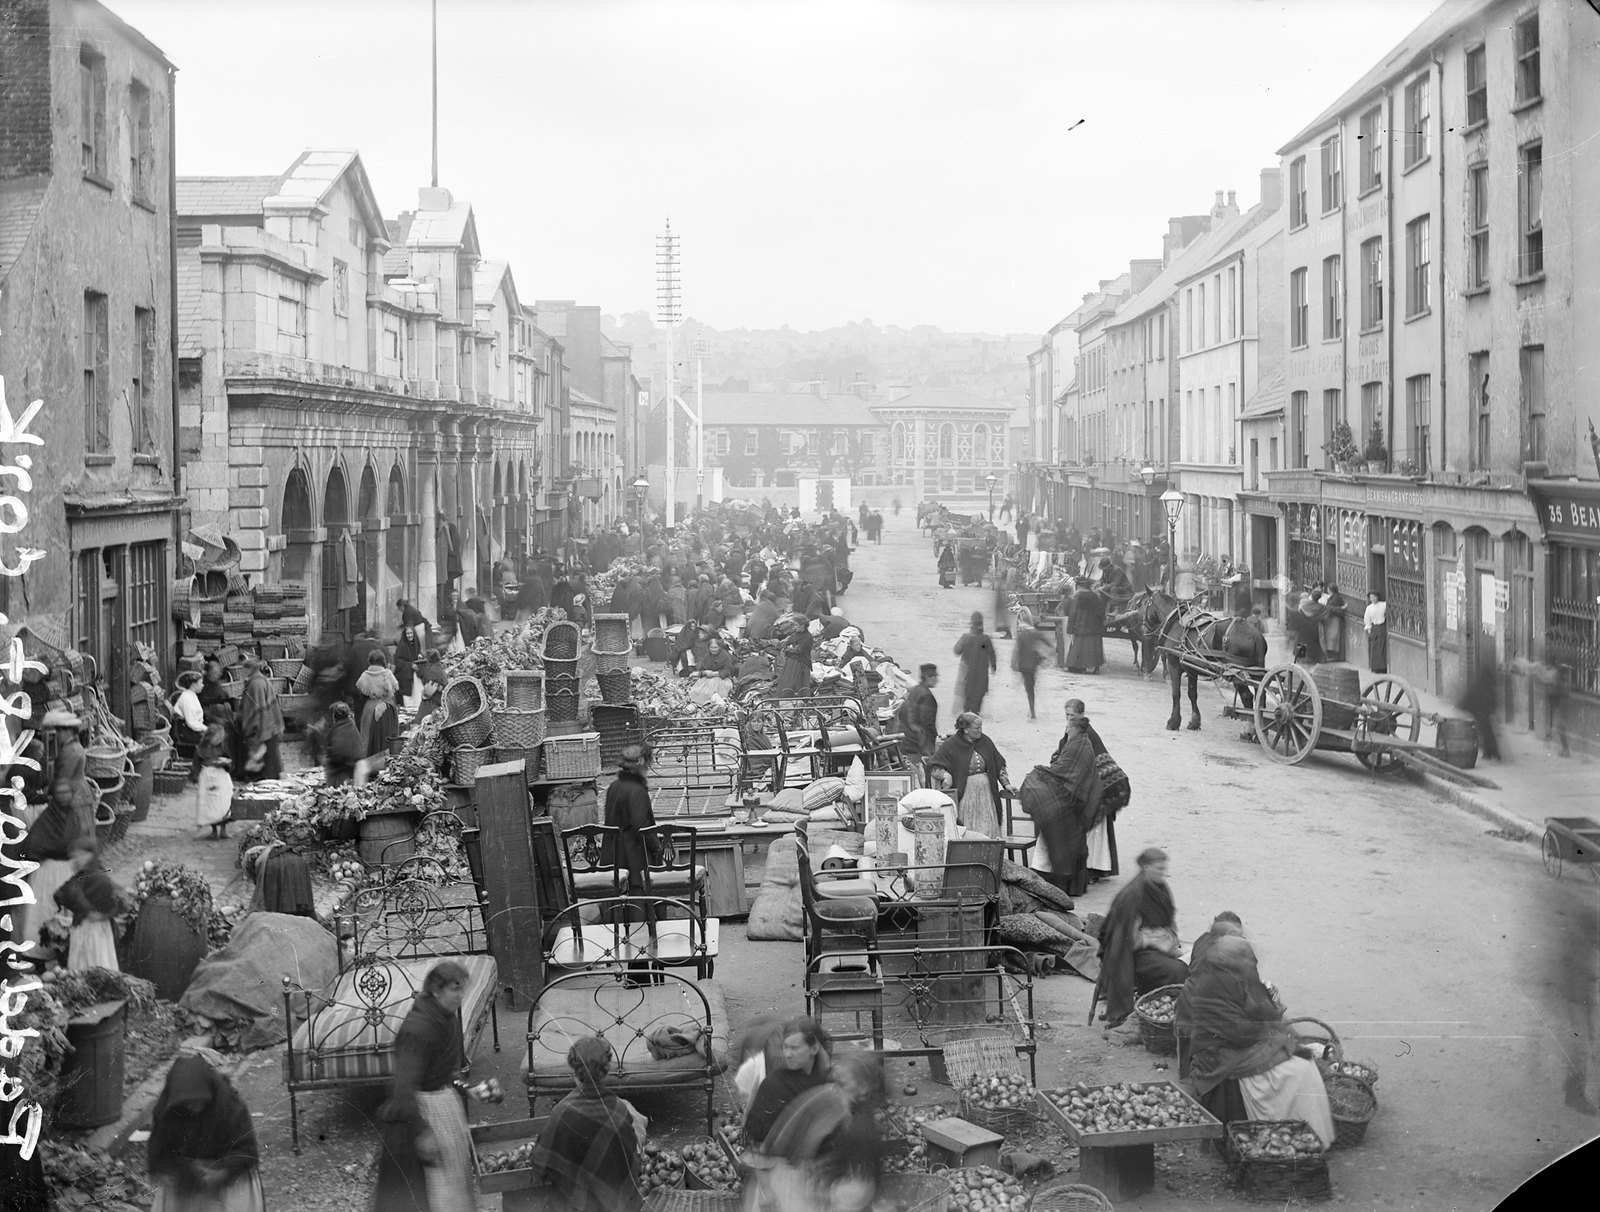 Paddy's Market, Cork City | by National Library of Ireland on The Commons